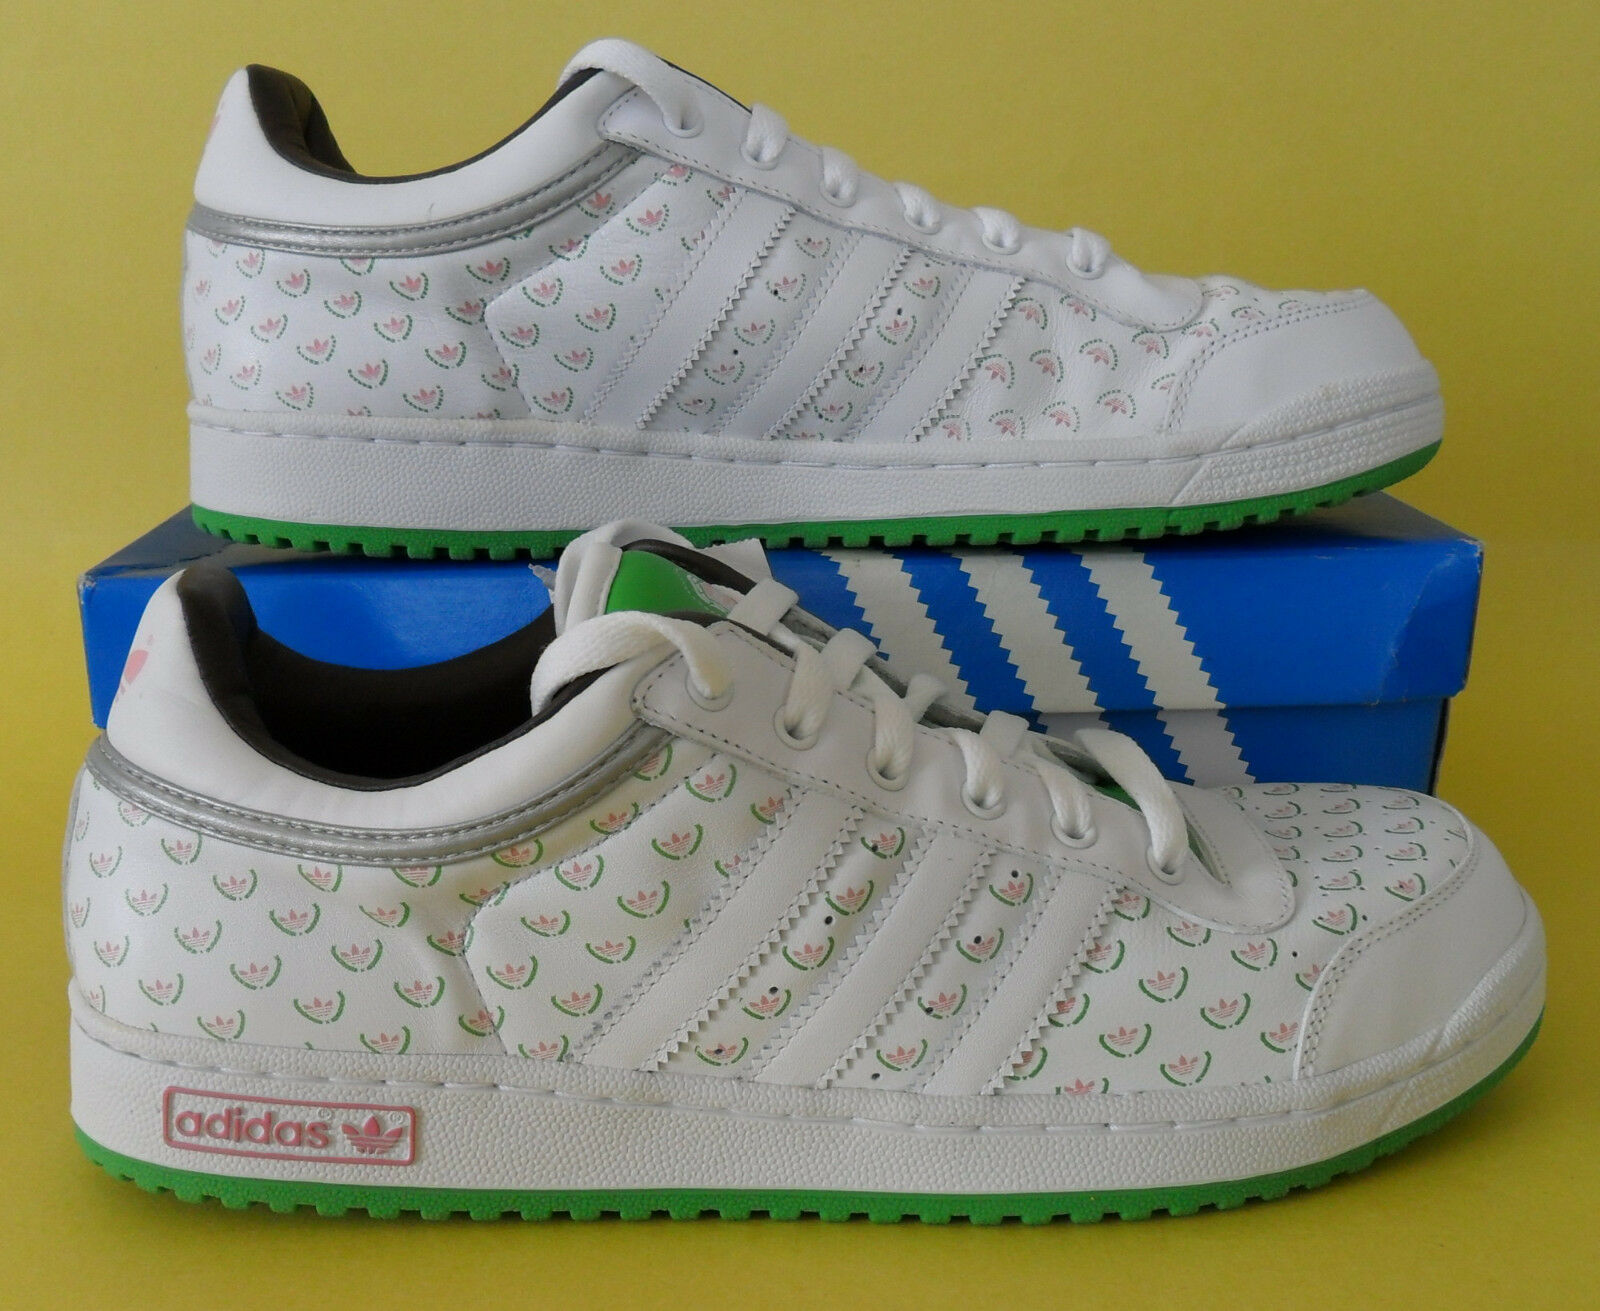 info for 8e032 41859 RARESPECIAL EDNibAdidas TOP TEN LOW EASTER Superstar shoes gazelleMens sz 12